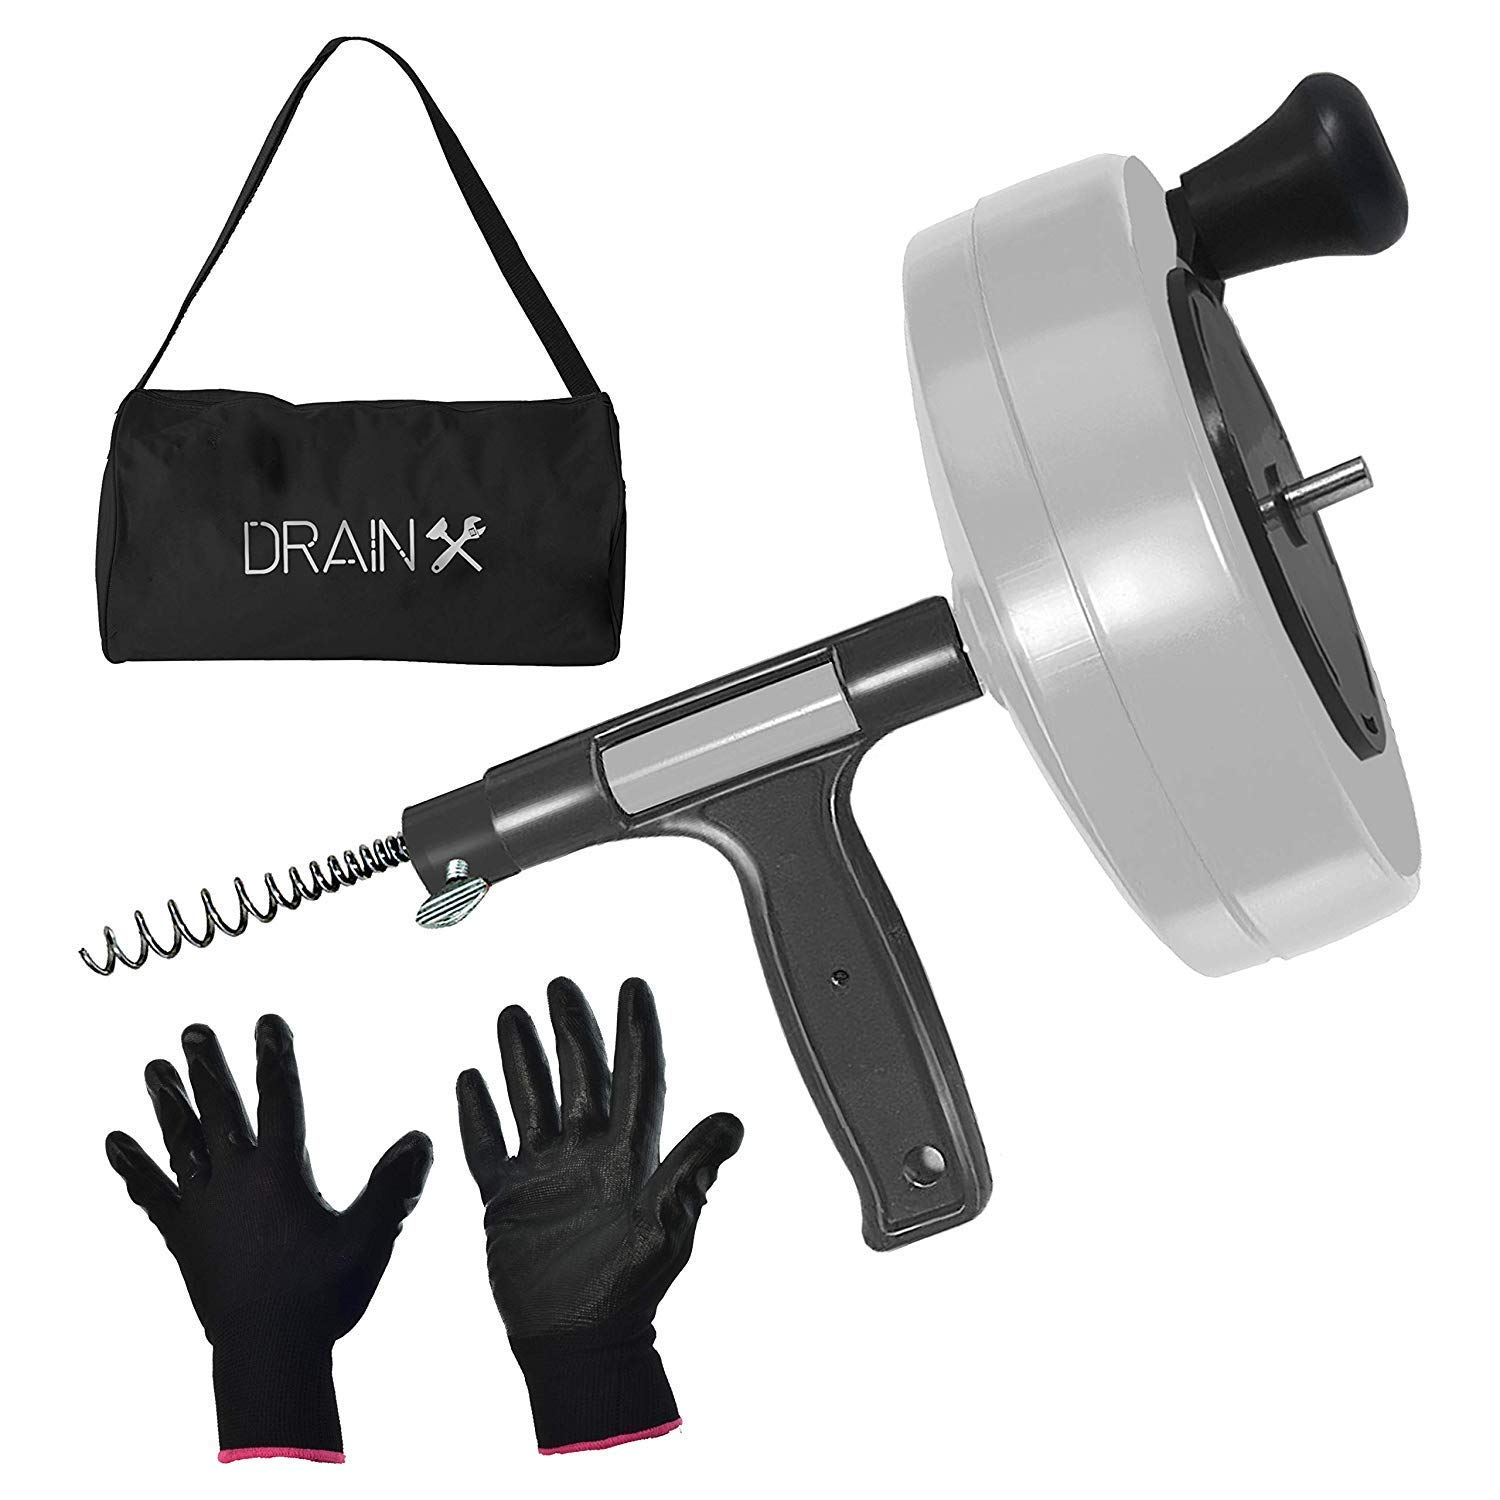 Drainx Power Pro 50-FT Steel Drum Auger Plumbing Snake with Drill Adapter | Heavy Duty Drain Snake Cable with Work Gloves and Storage Bag- White. by DrainX